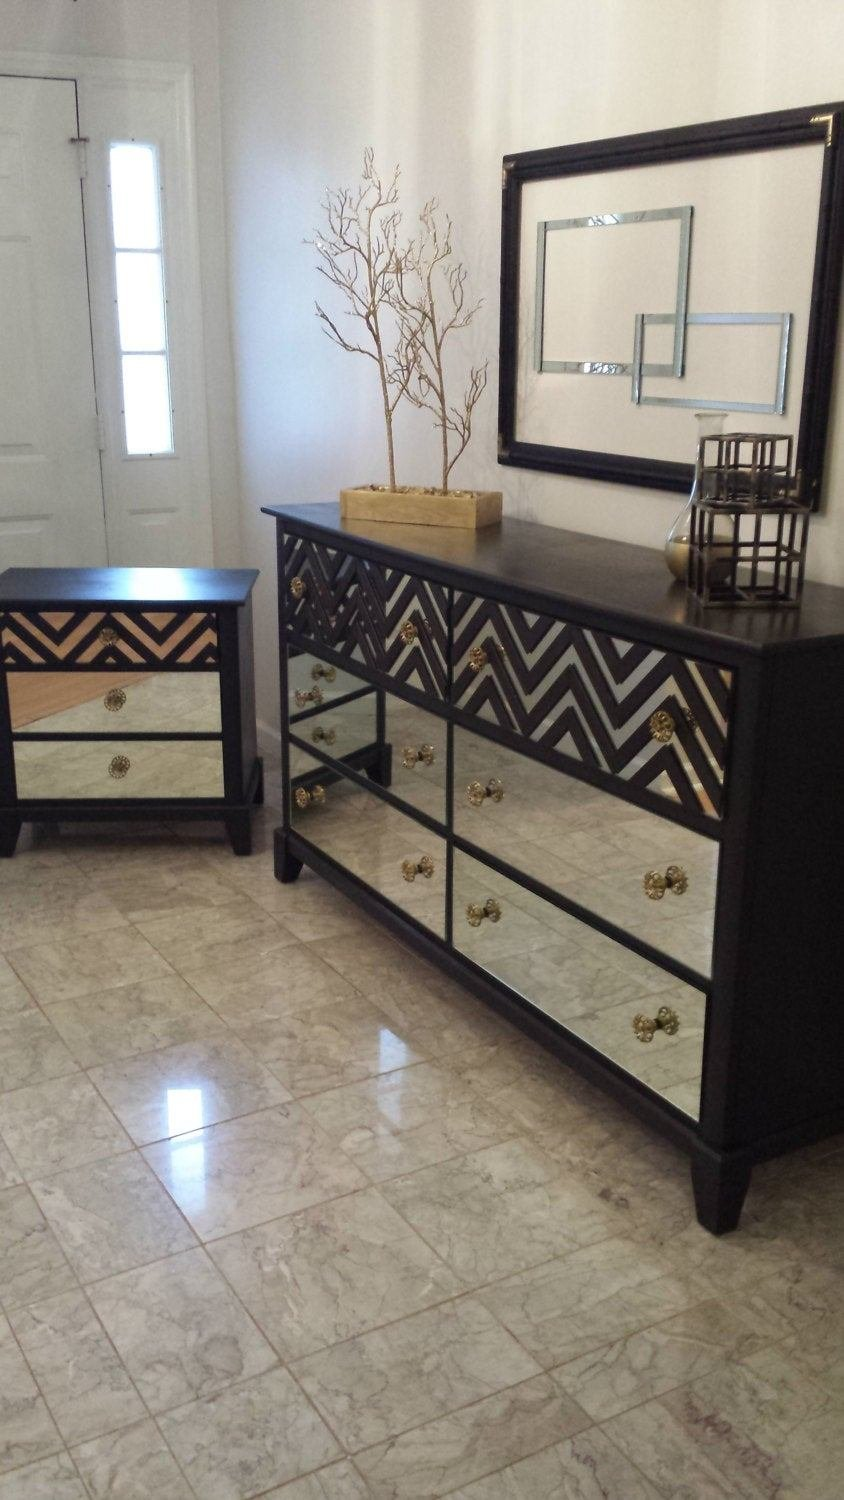 Best Mirrored Bedroom Dresser Set Black With Chevron By With Pictures